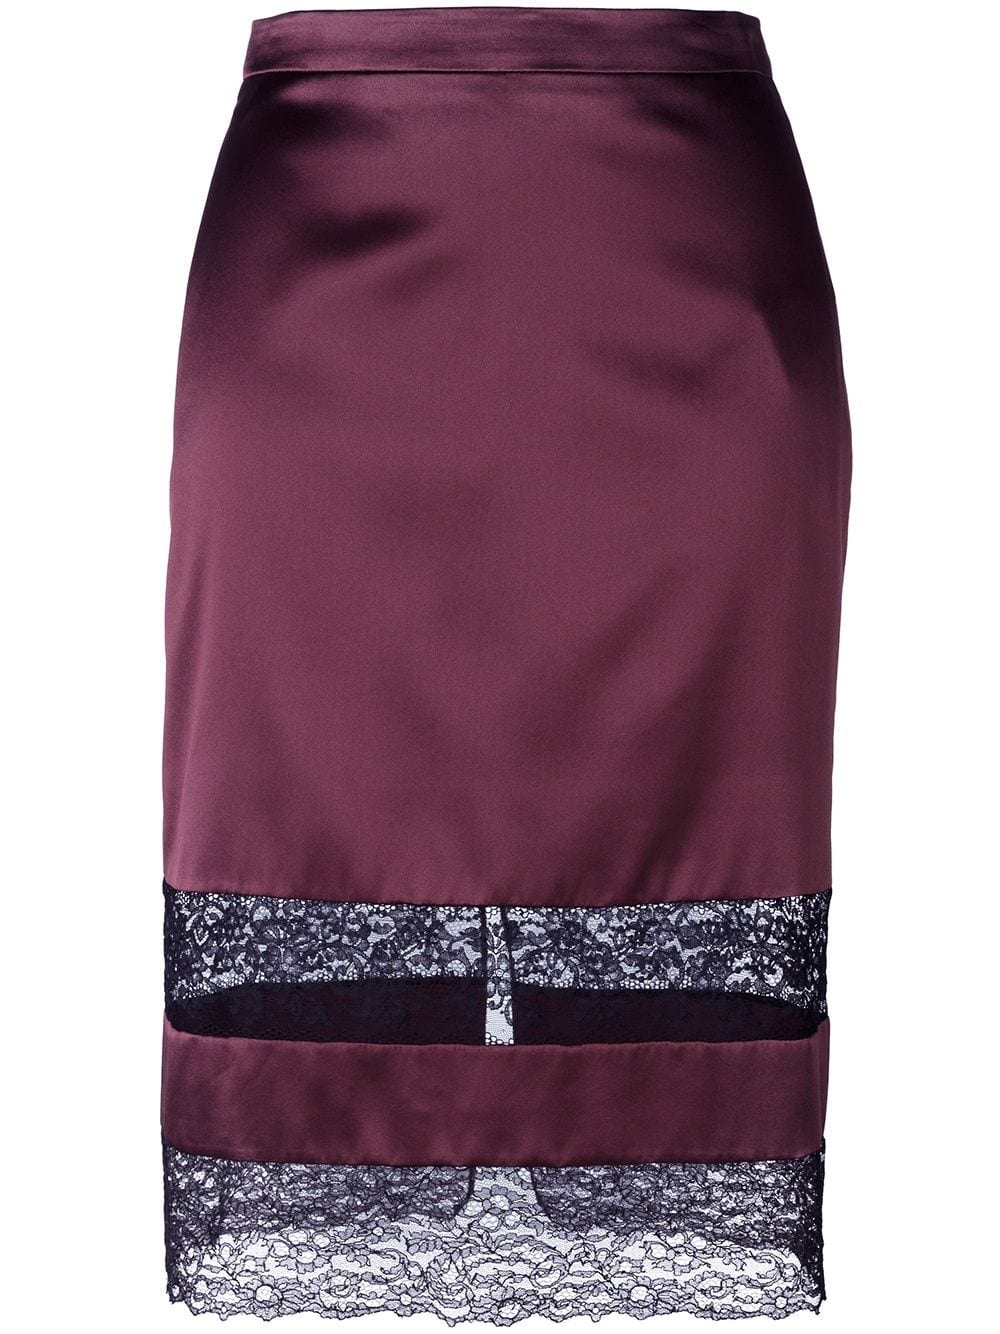 c80dd15be4 Givenchy lace panel pencil skirt - Red in 2019 | Products | High ...